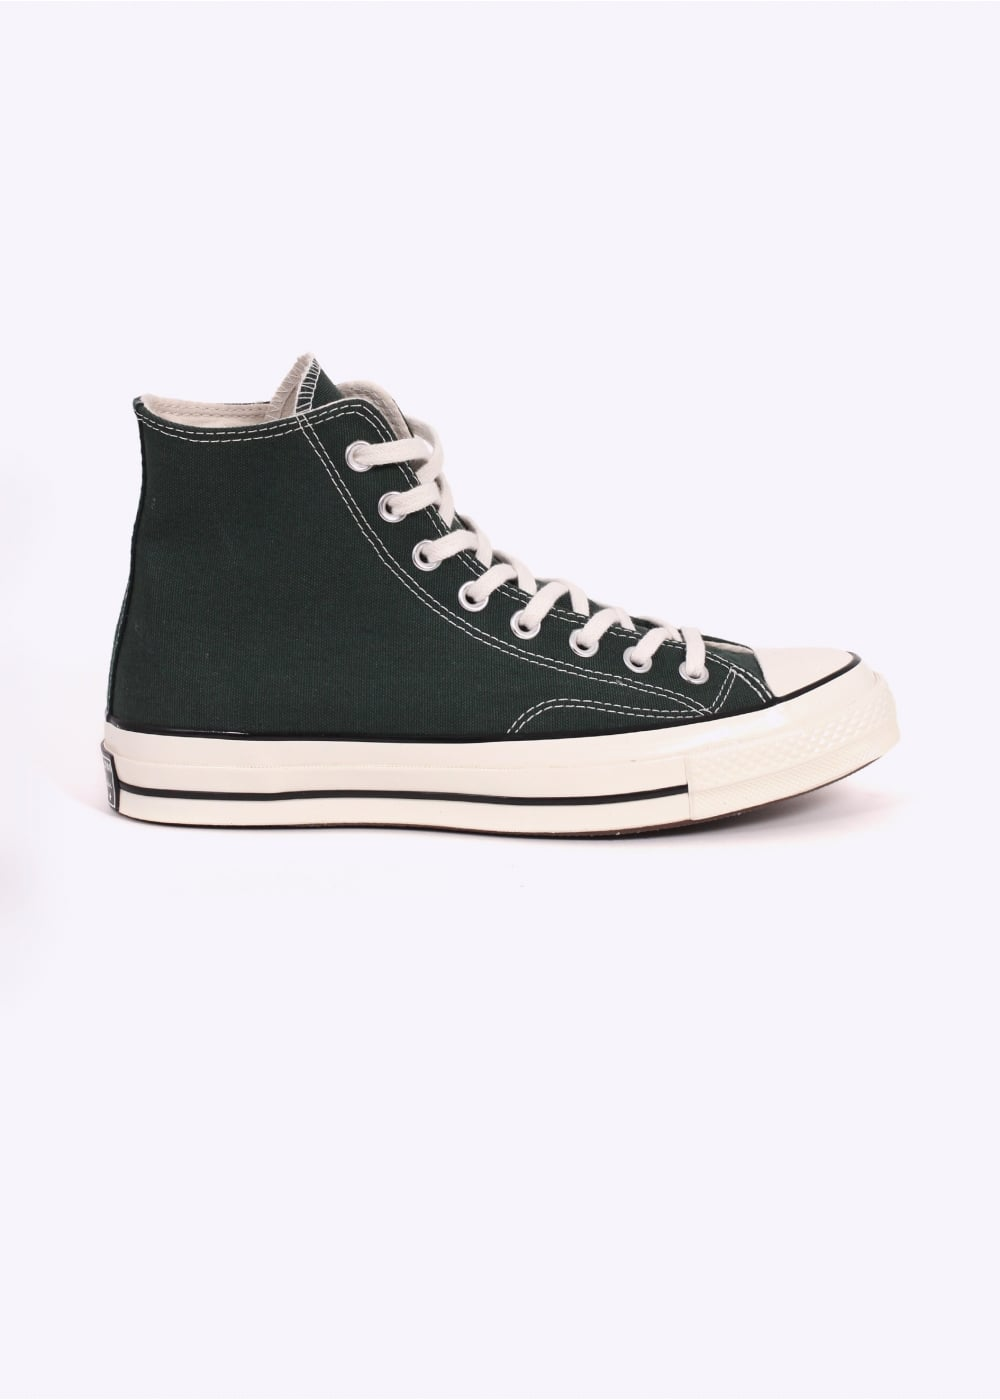 430f57776e4a CTAS 70s Hi - Deep Emerald - Trainers from Triads UK